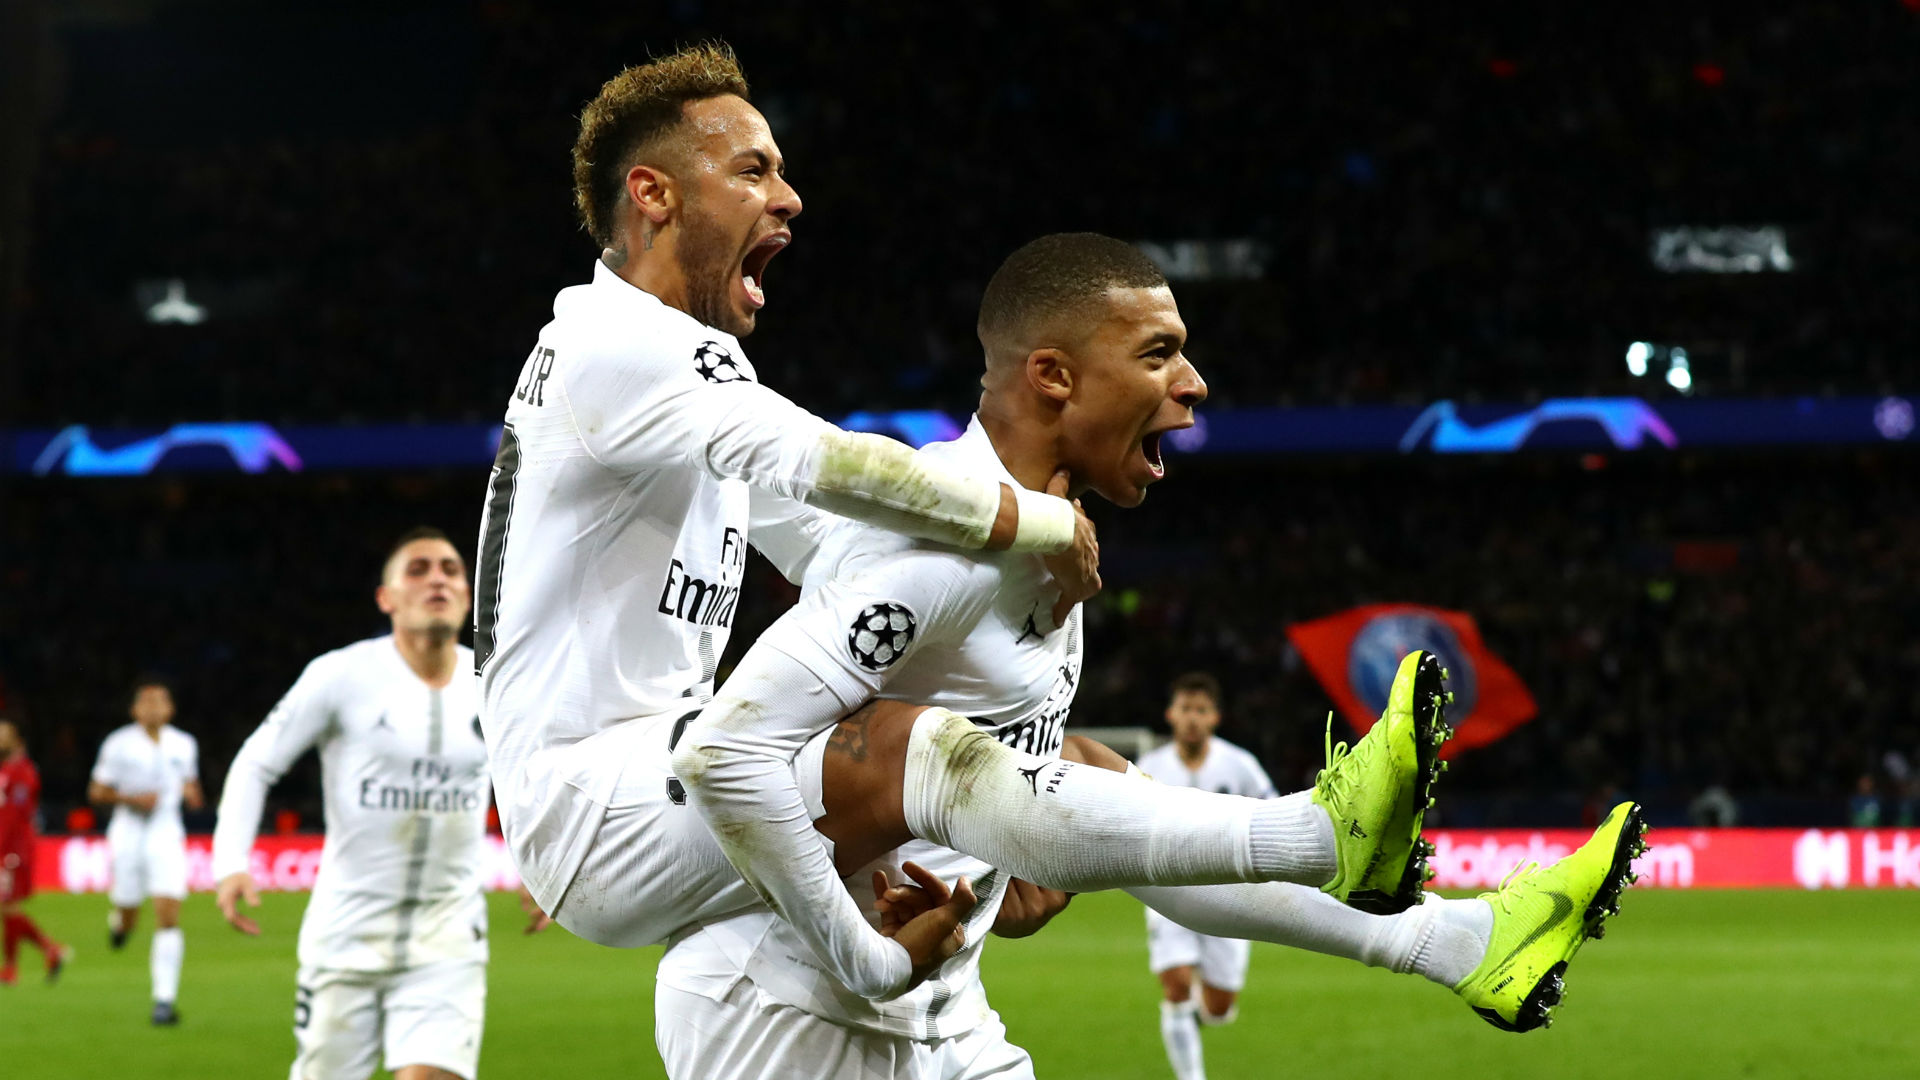 Better and better - Mbappe hails Neymar link